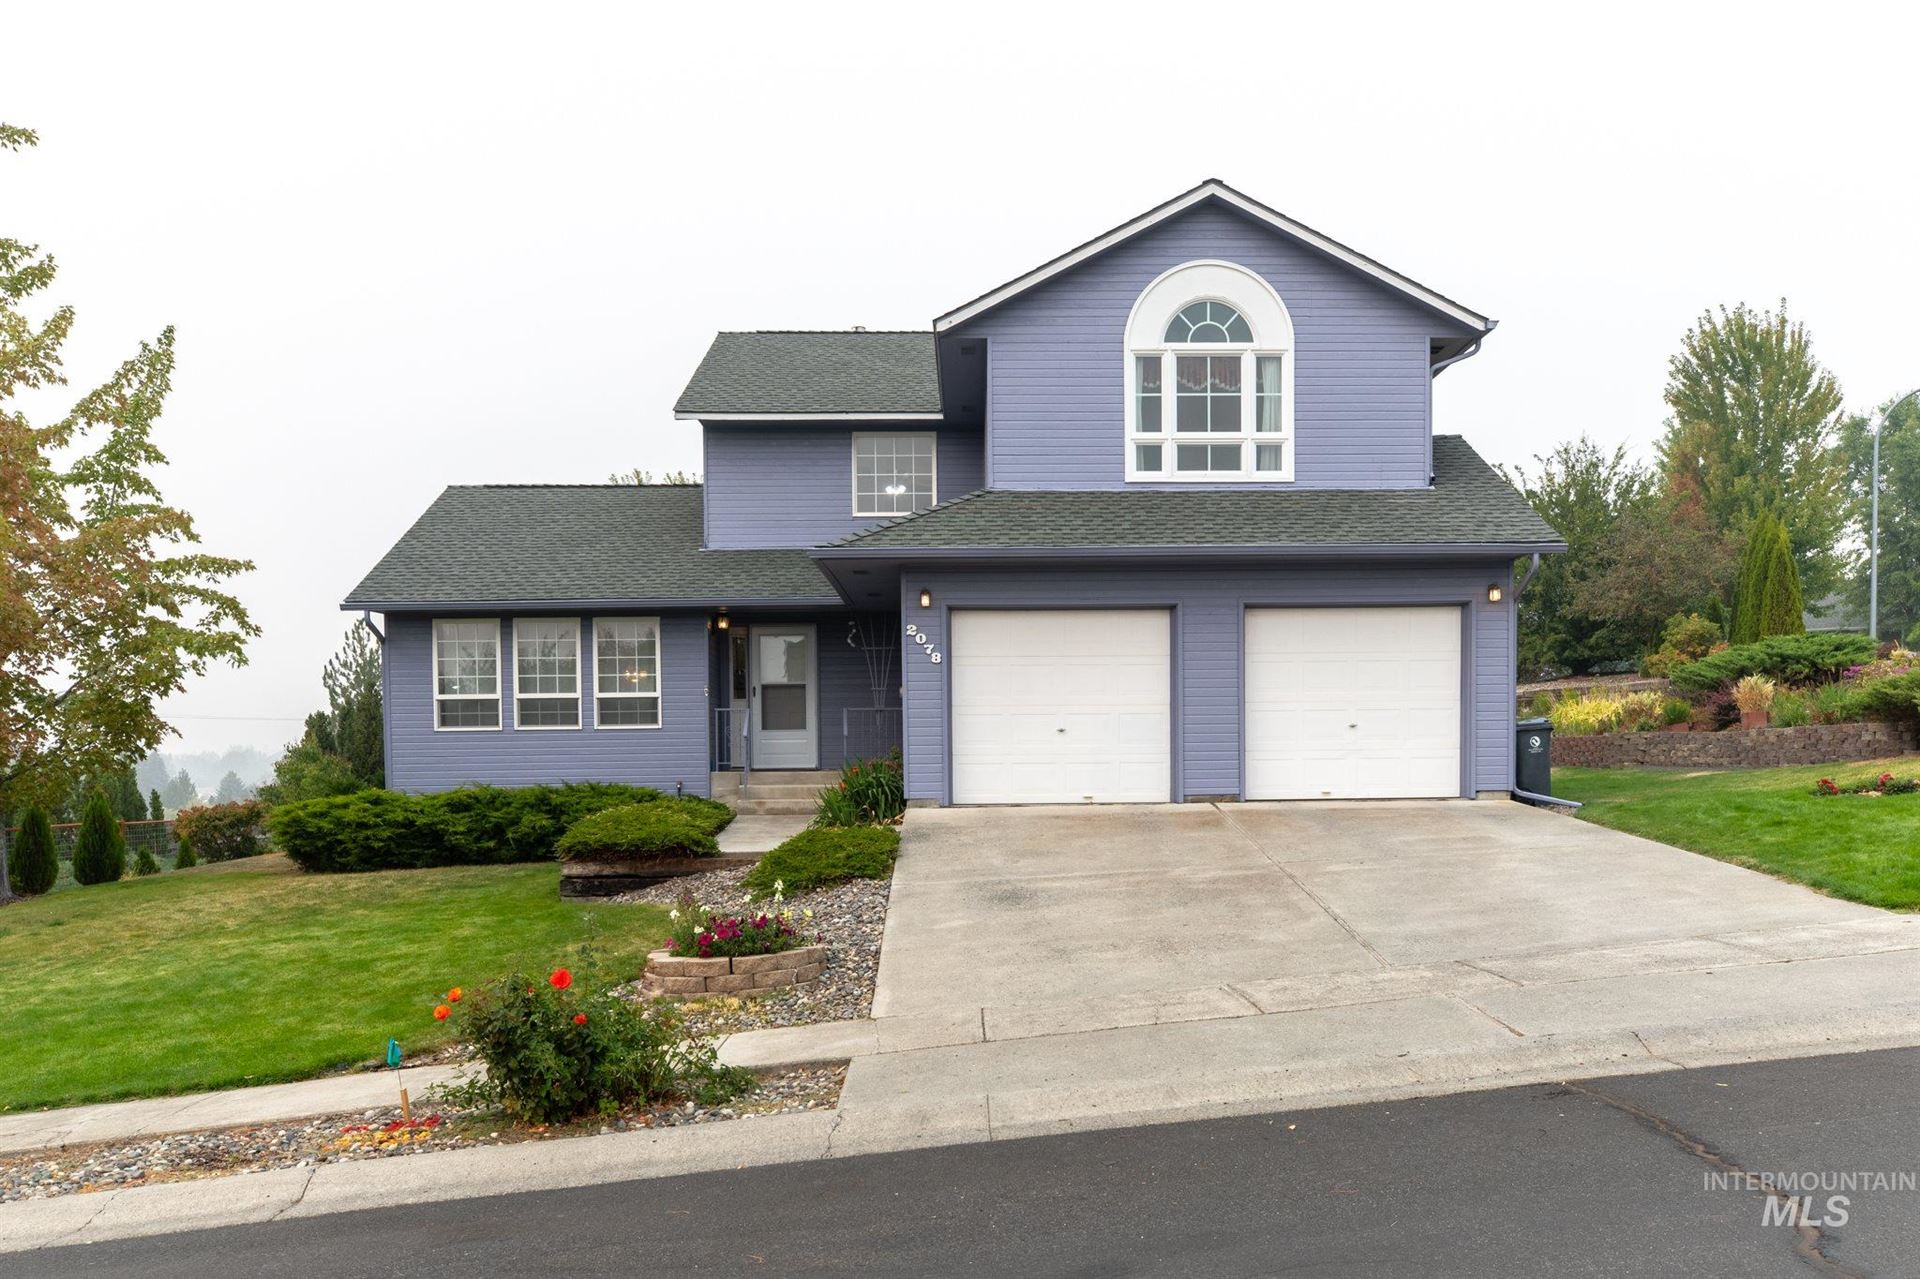 Photo of 2078 Damen St, Moscow, ID 83843 (MLS # 98781623)